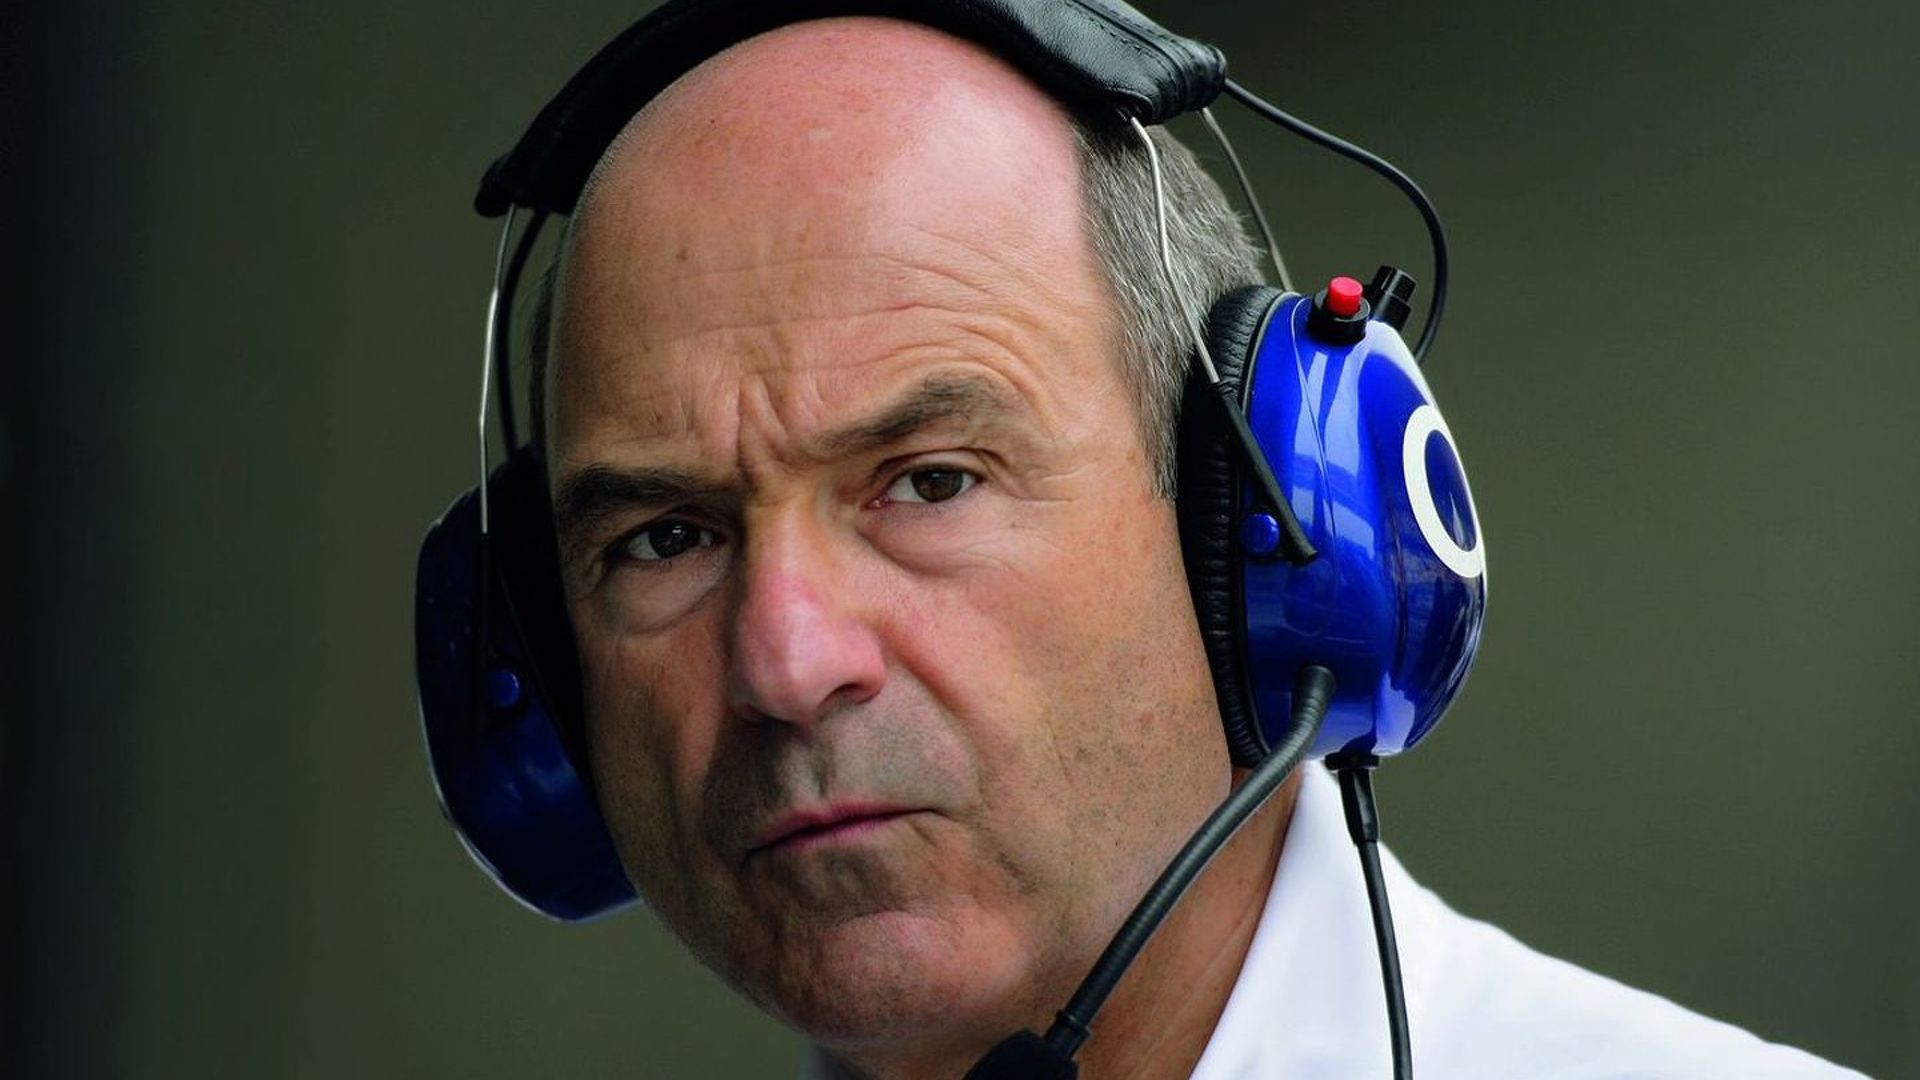 Sauber 'waiting patiently' for 2010 entry